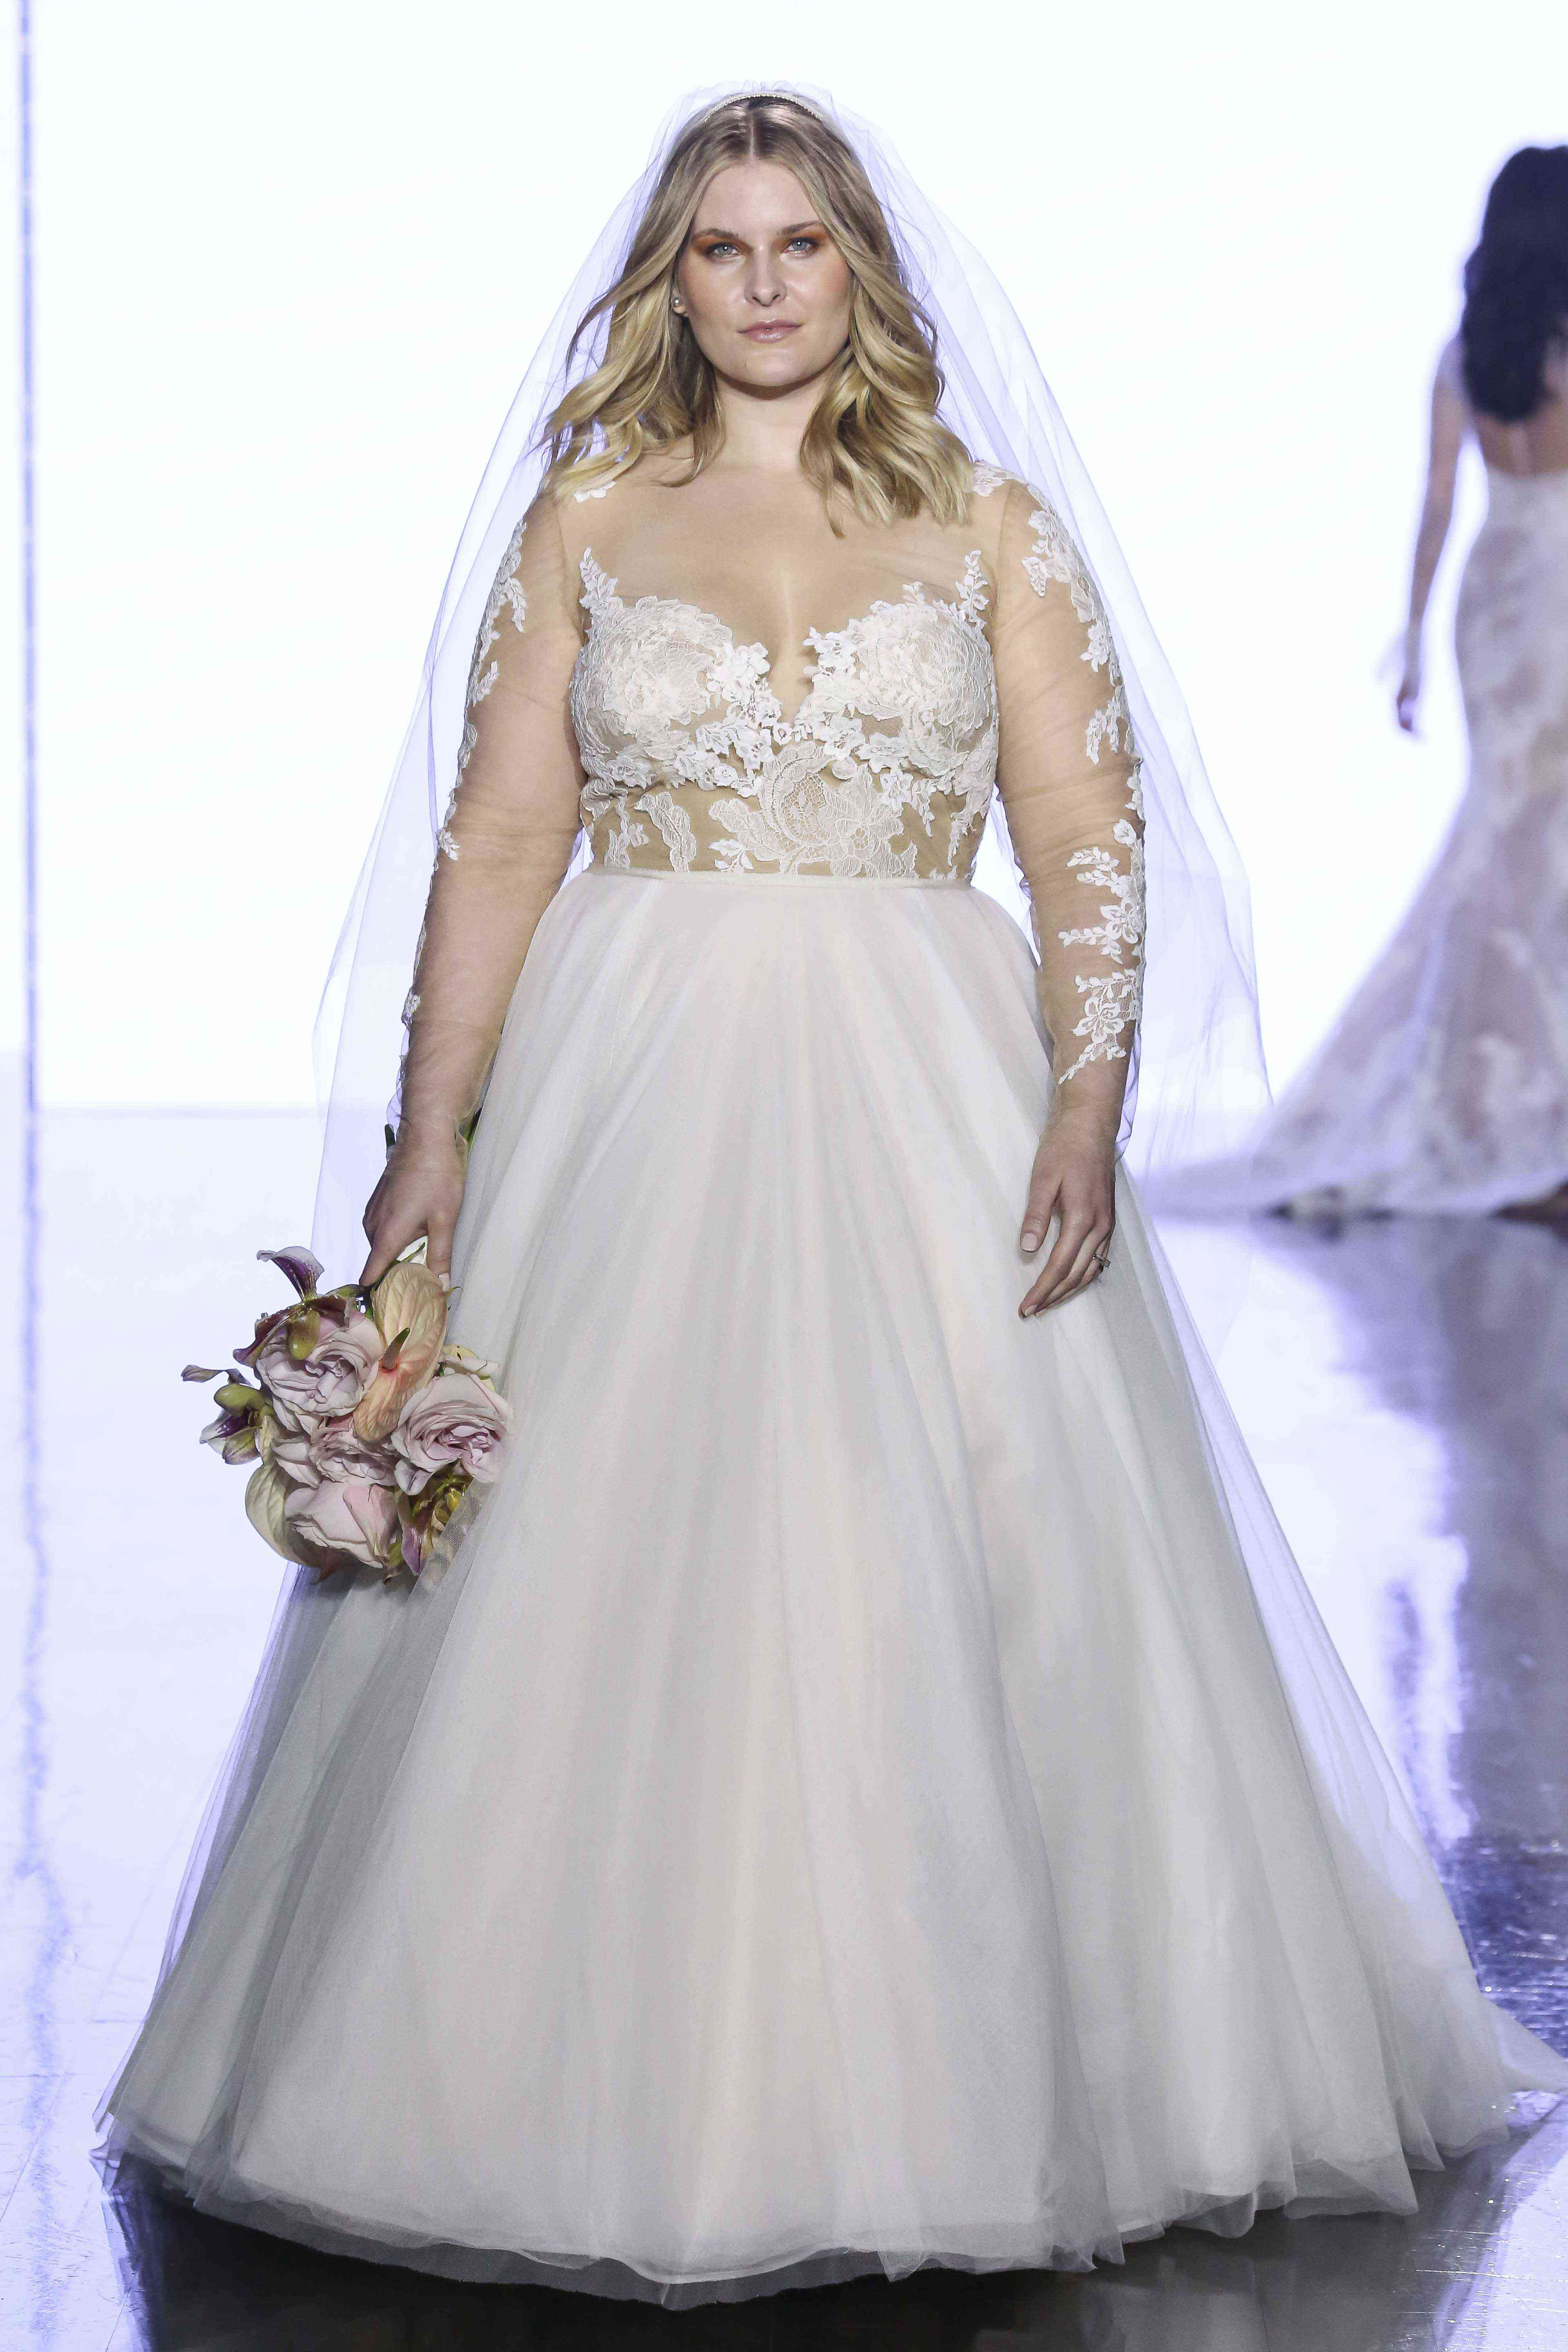 Model in ballgown with lace-embroidered illusion long sleeves and bodice and an illusion neckline